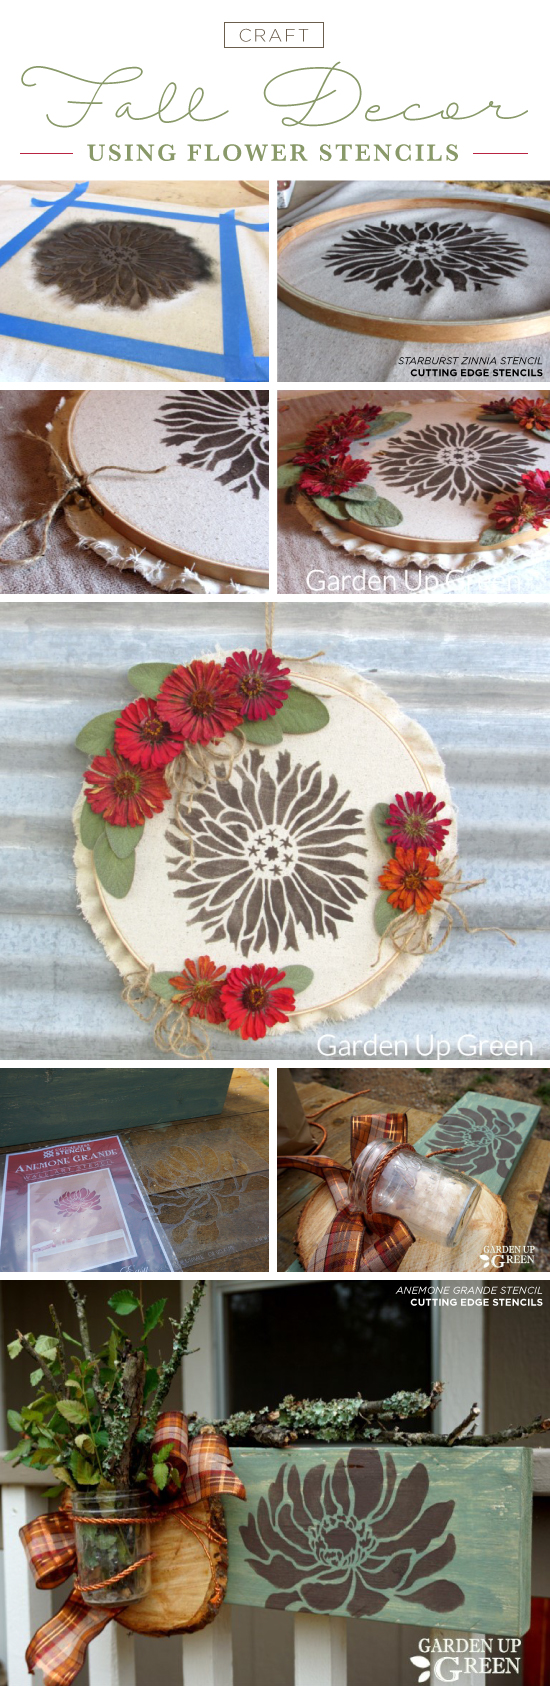 Cutting Edge Stencils shares how to create Fall inspired home decor using flower stencils. http://www.cuttingedgestencils.com/stencils-flower-stencil.html